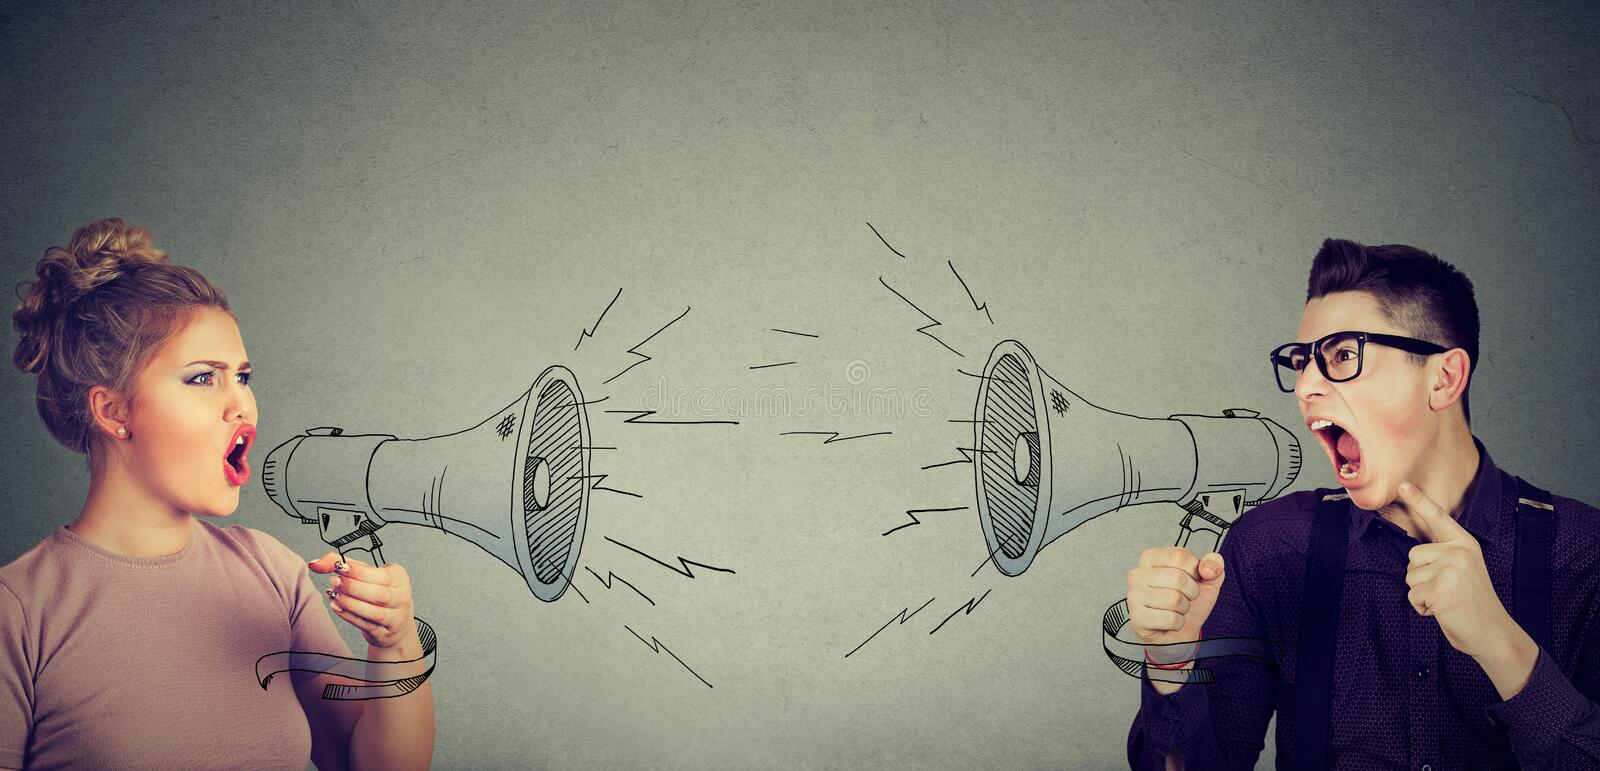 Quarrel between woman and man screaming at each other in megaphone. Quarrel between young women and men screaming at each other in megaphone royalty free stock image